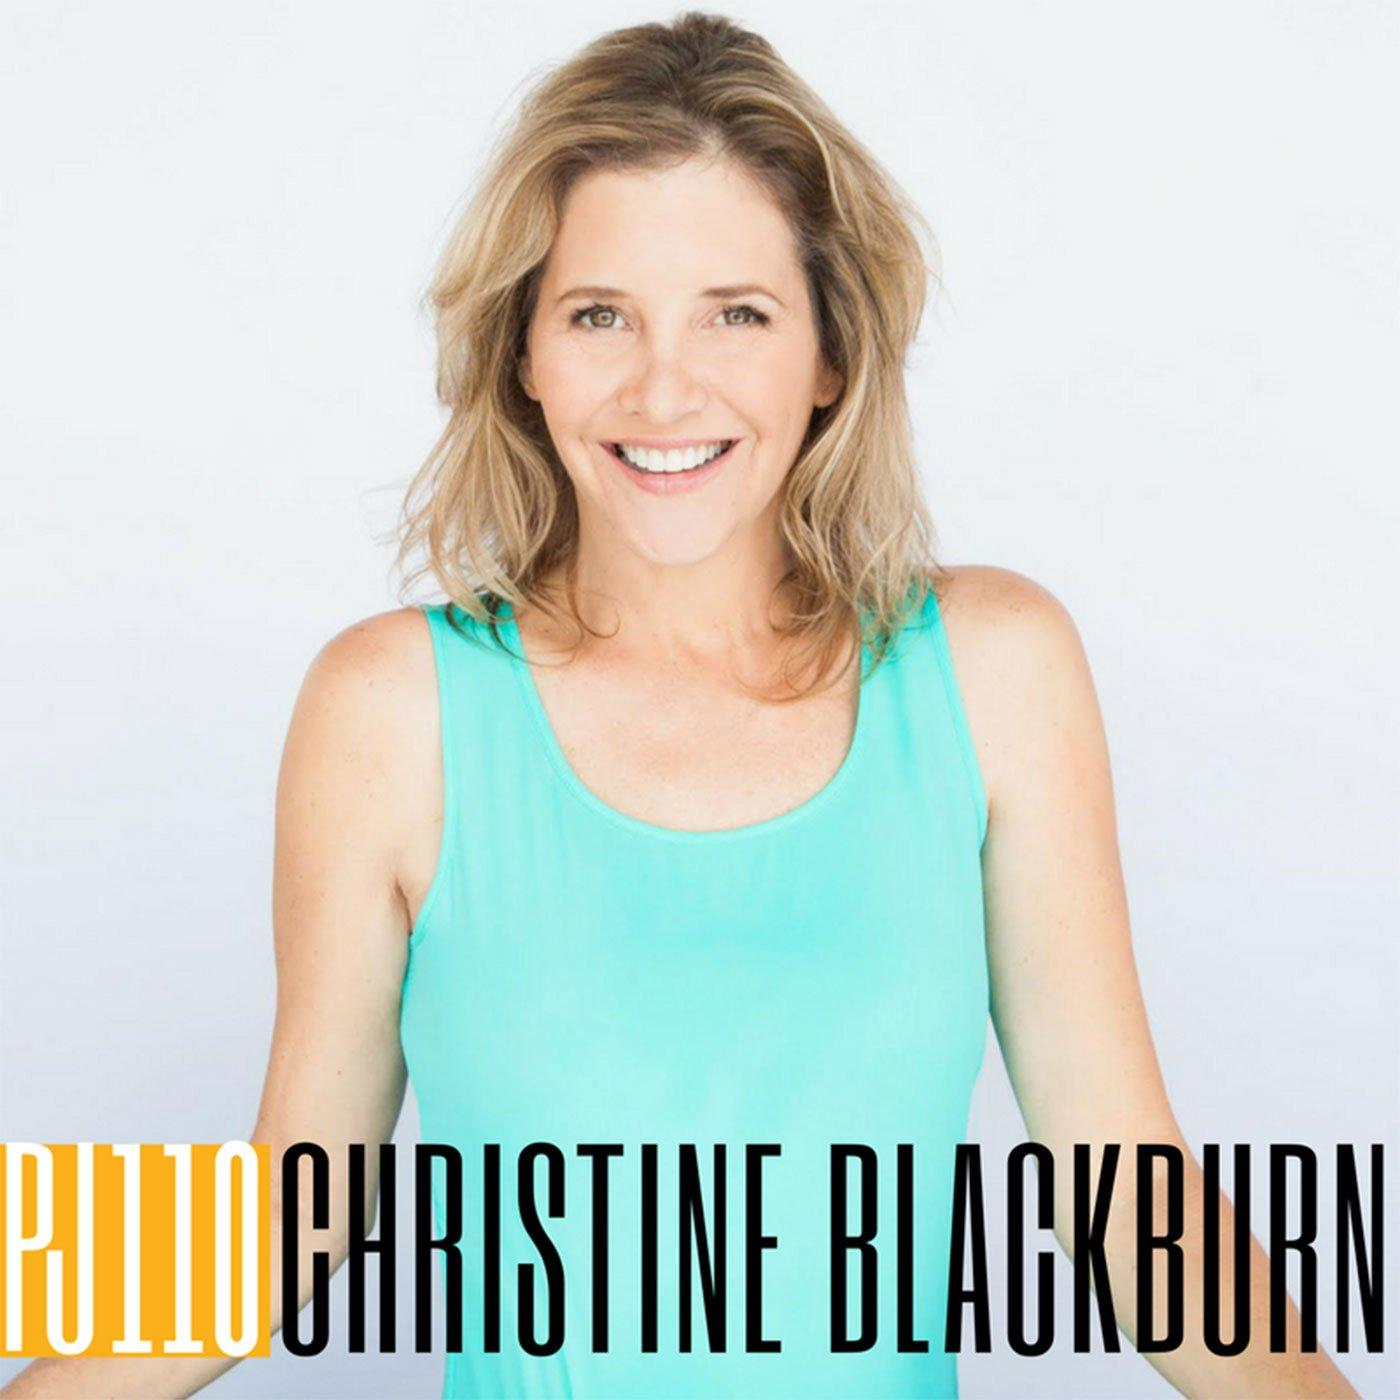 110 Christine Blackburn | Hollywood's Most Interesting Stories